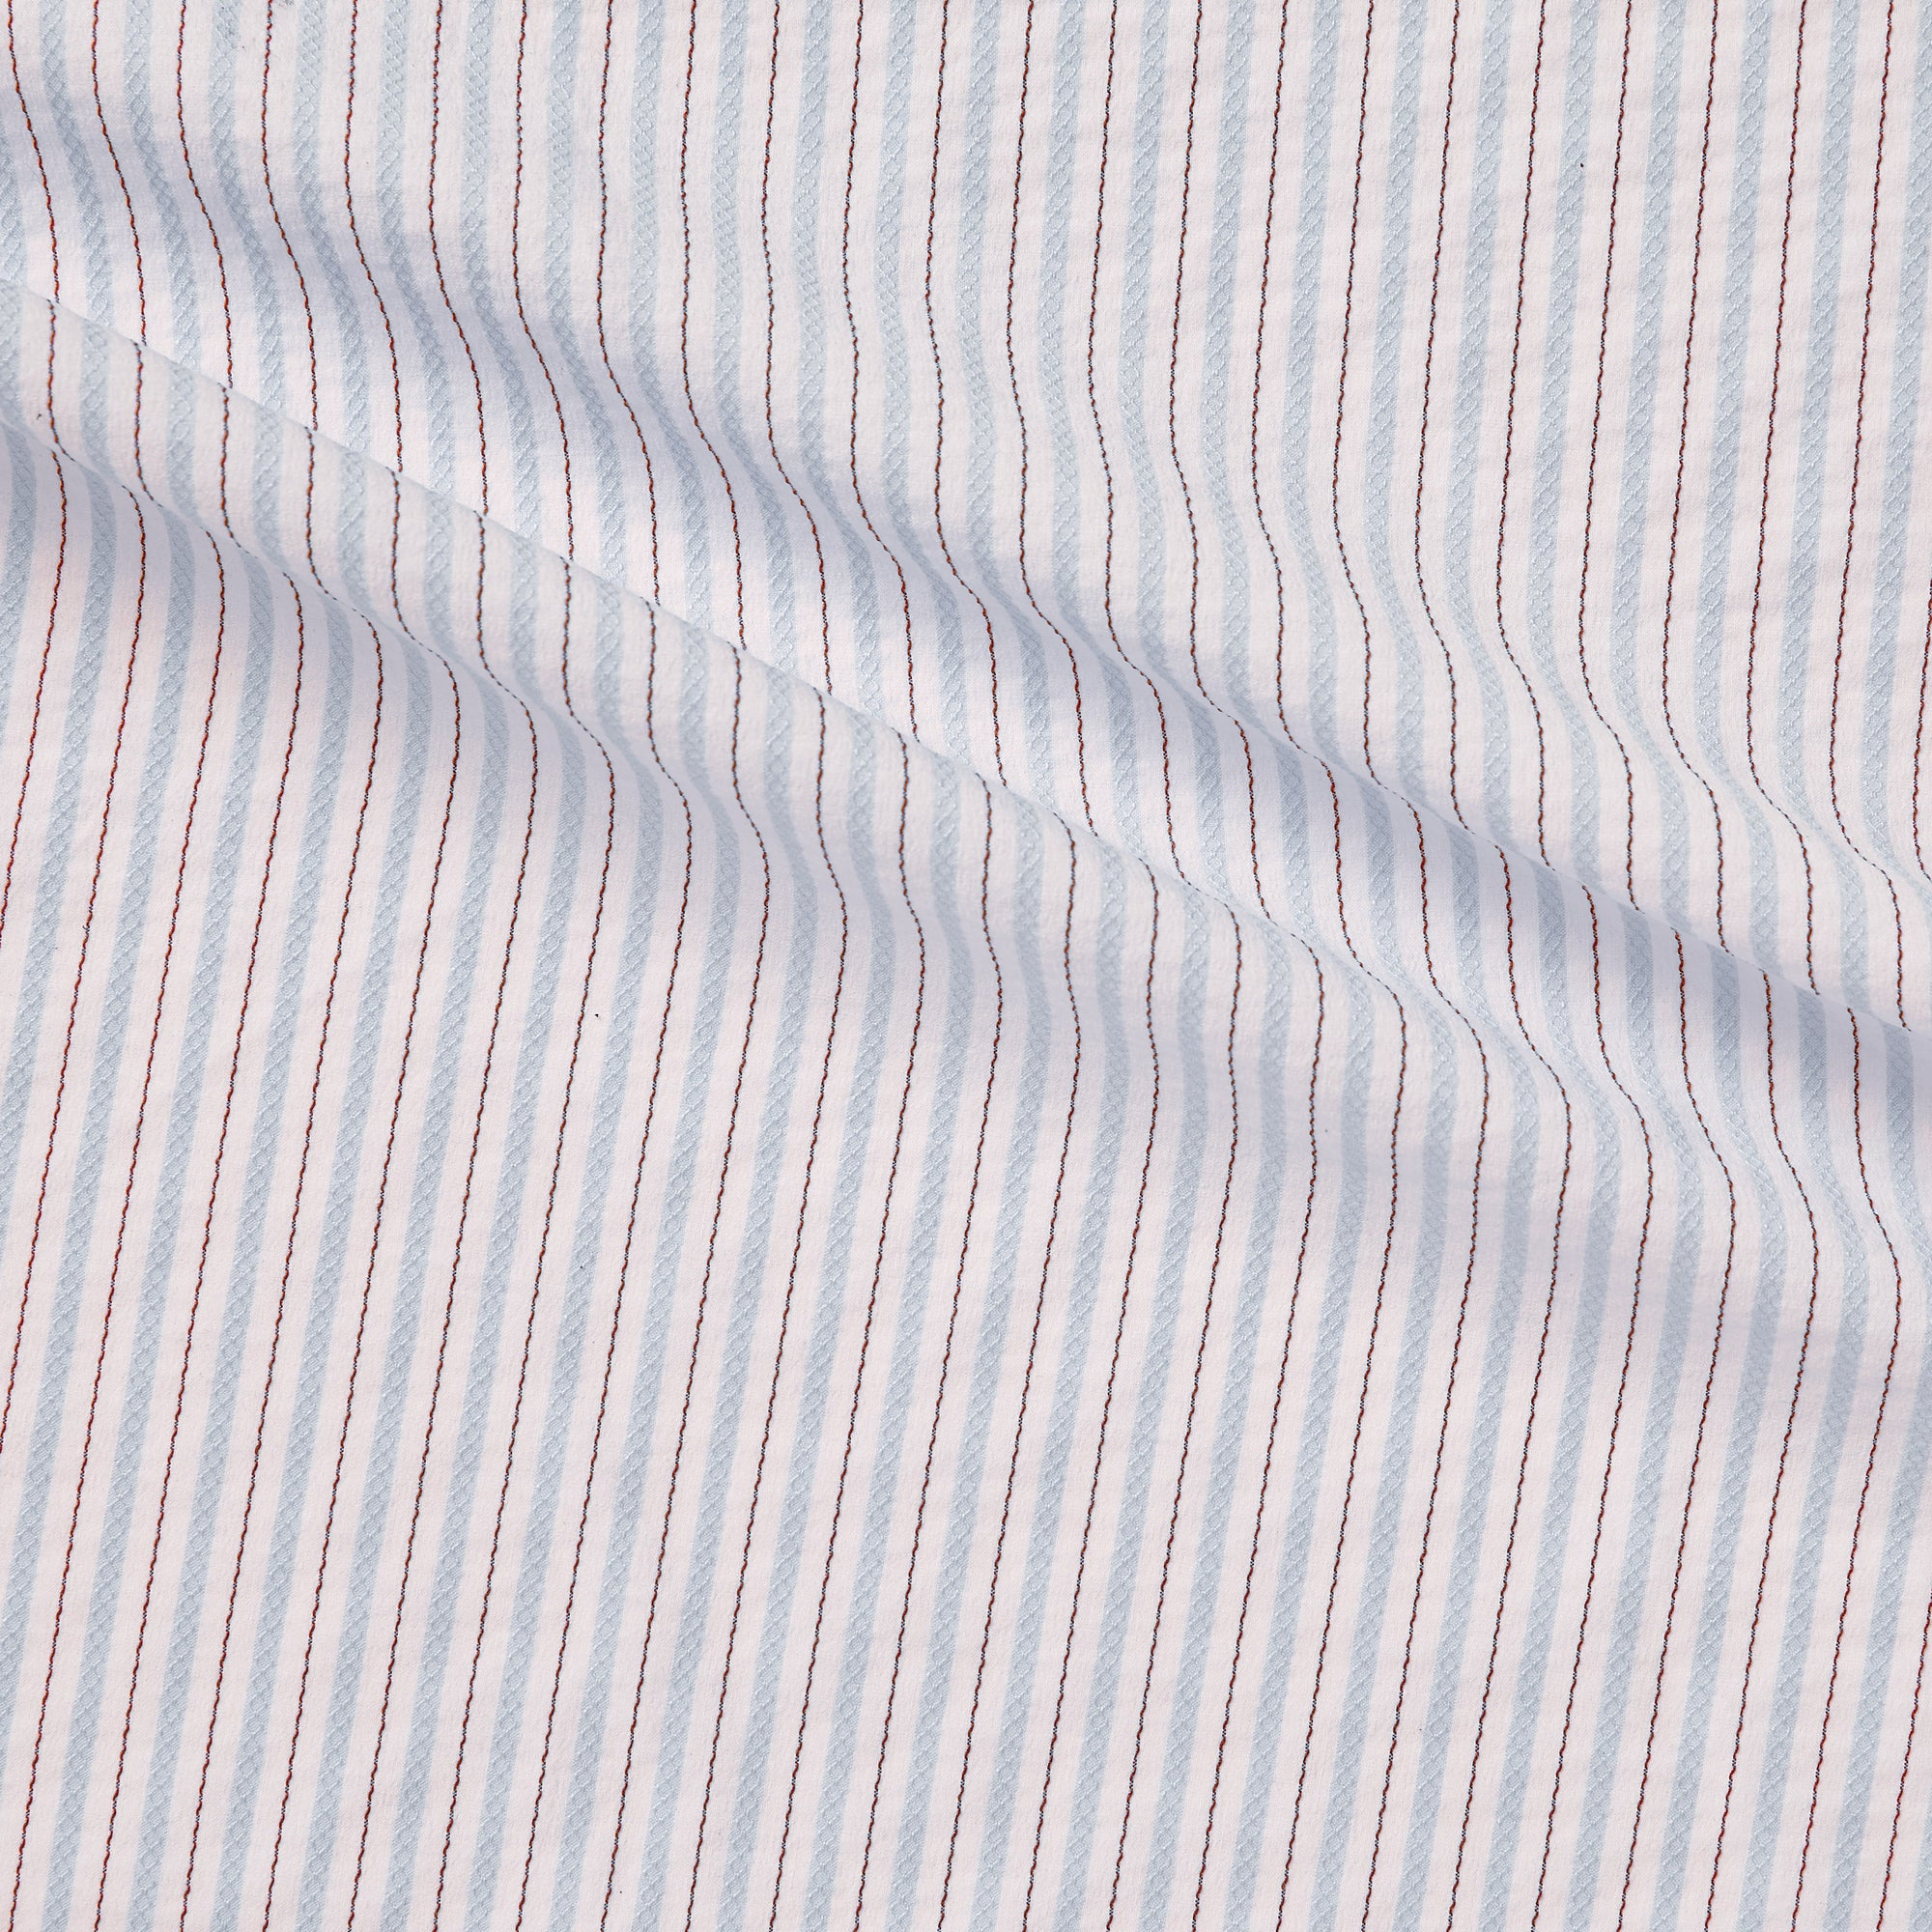 gap blue Pencil striped stretch cotton stitch detailing